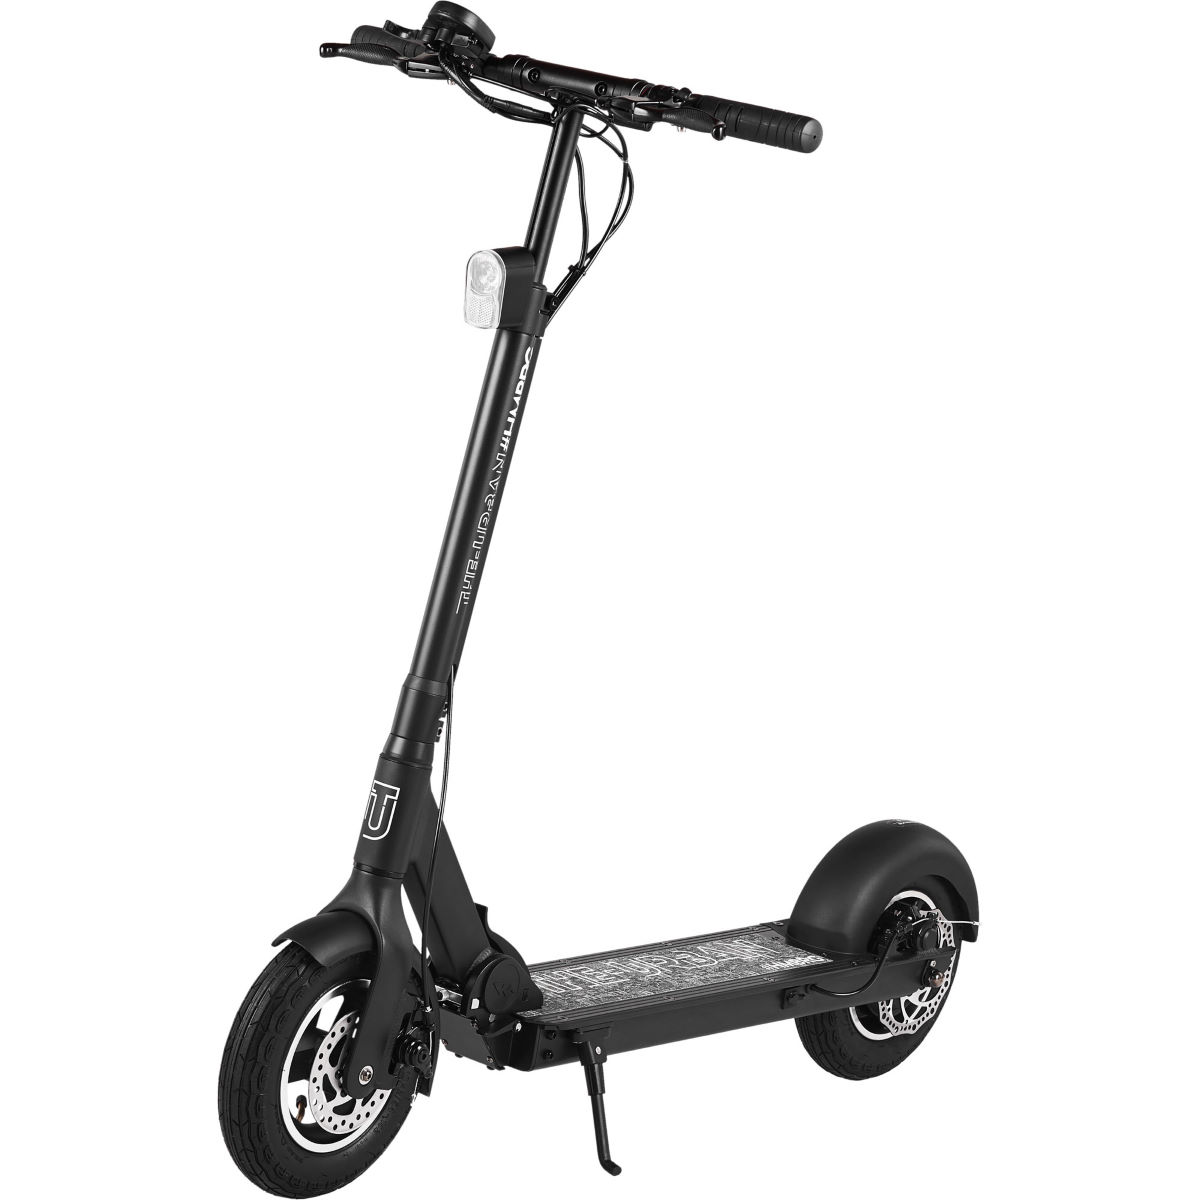 Walberg Urban V2 Electric Scooter - One Size Black  Electric Scooters